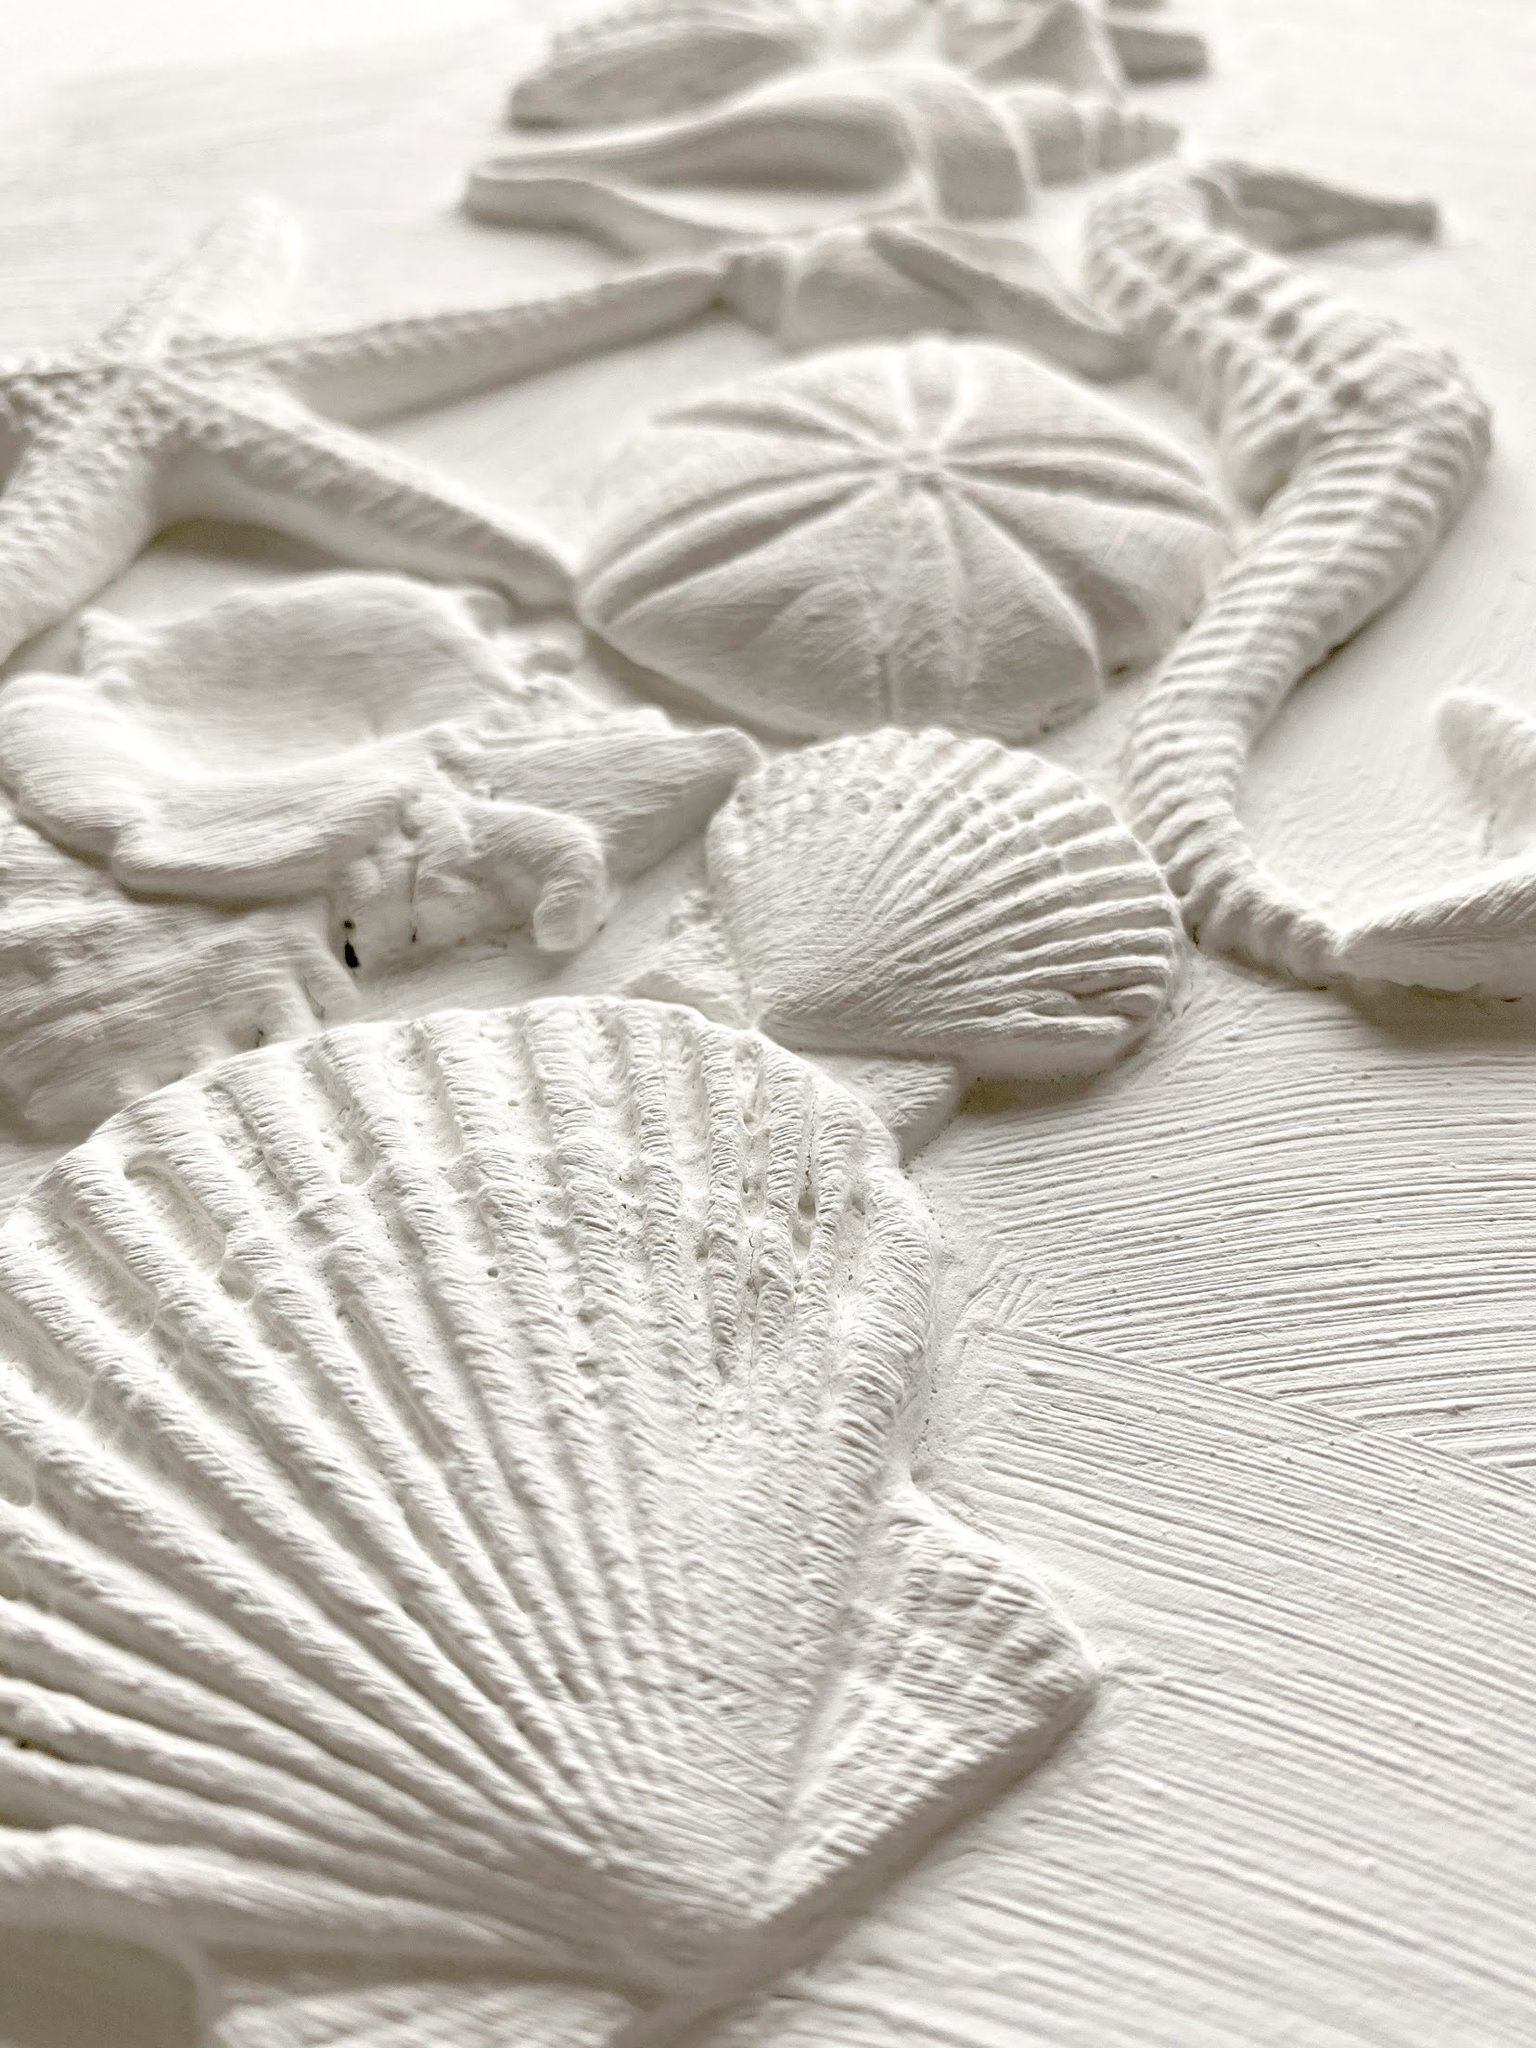 Have fun adding texture to your projects with these Iron Orchid Designs Decor Moulds - Seashore | www.raggedy-bits.com | #raggedybits #IOD #SeaShore #texture #DIY #Moulds